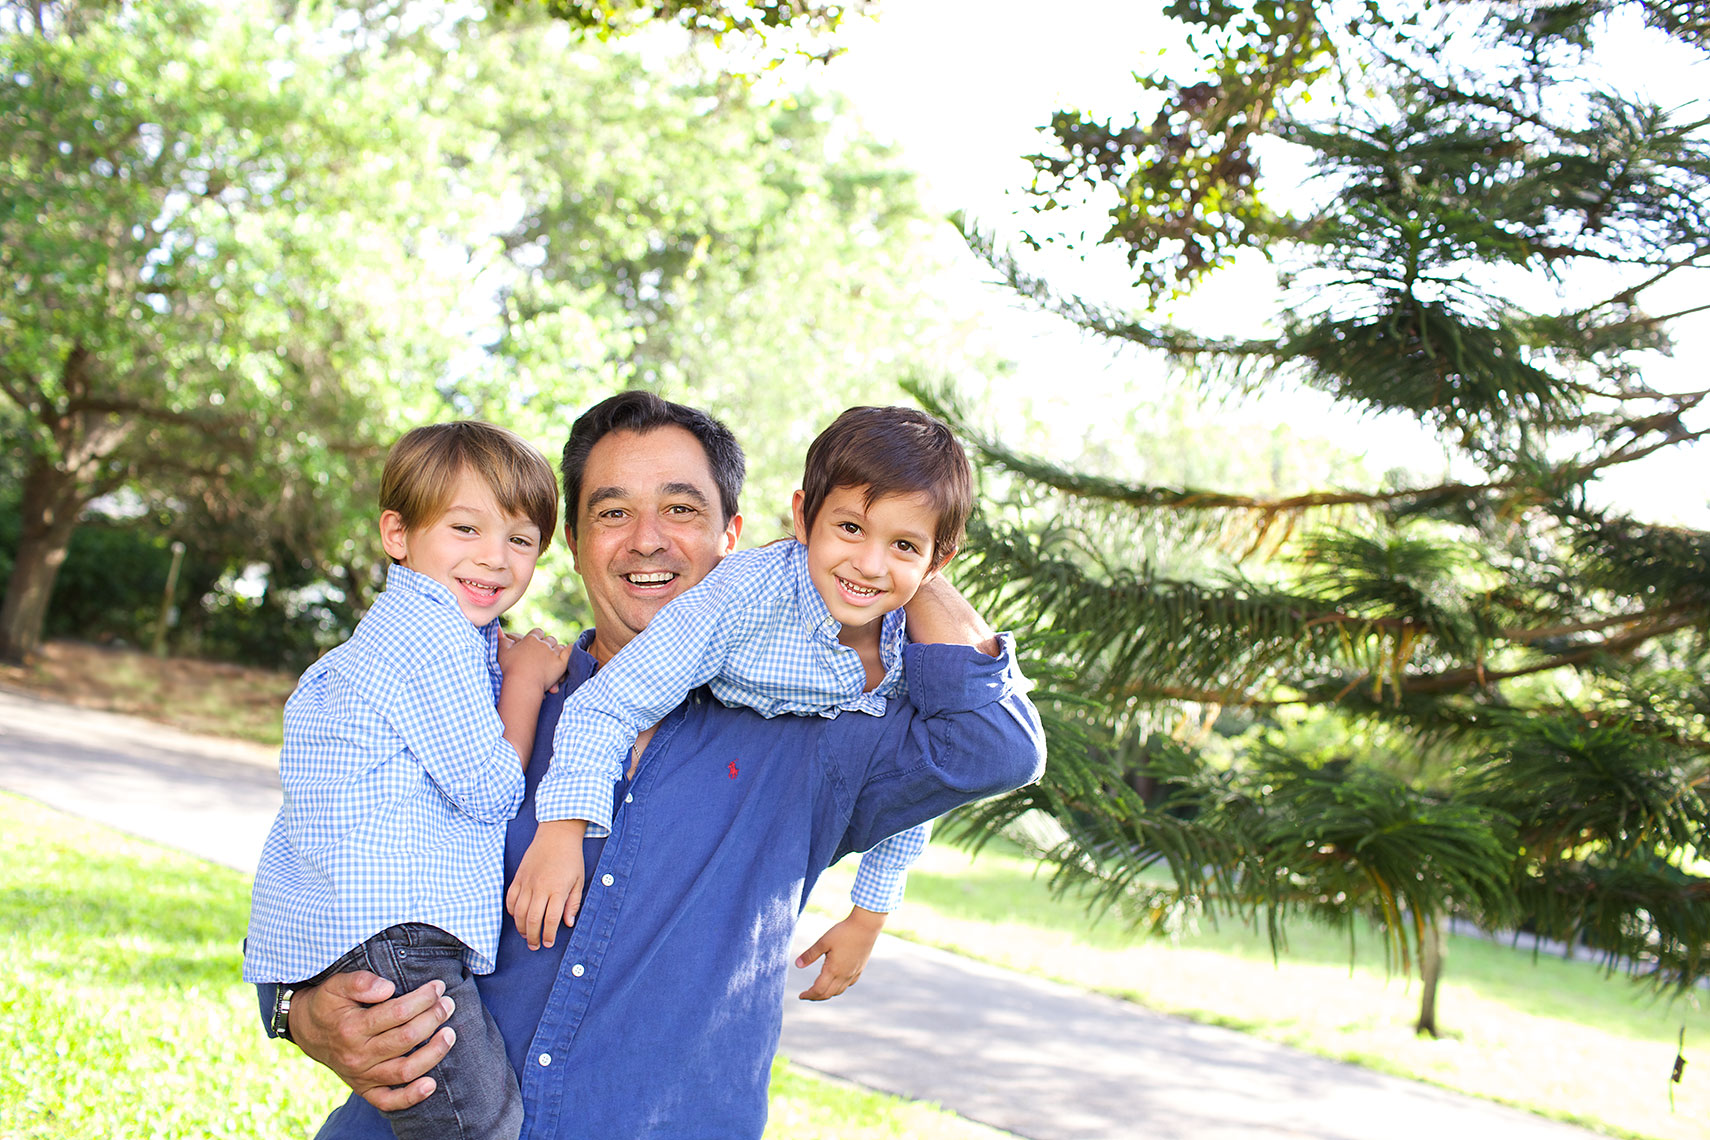 father-and-sons-lifestyle-family-portrait-photography_Big-Fish-Studios_Robert-Holland